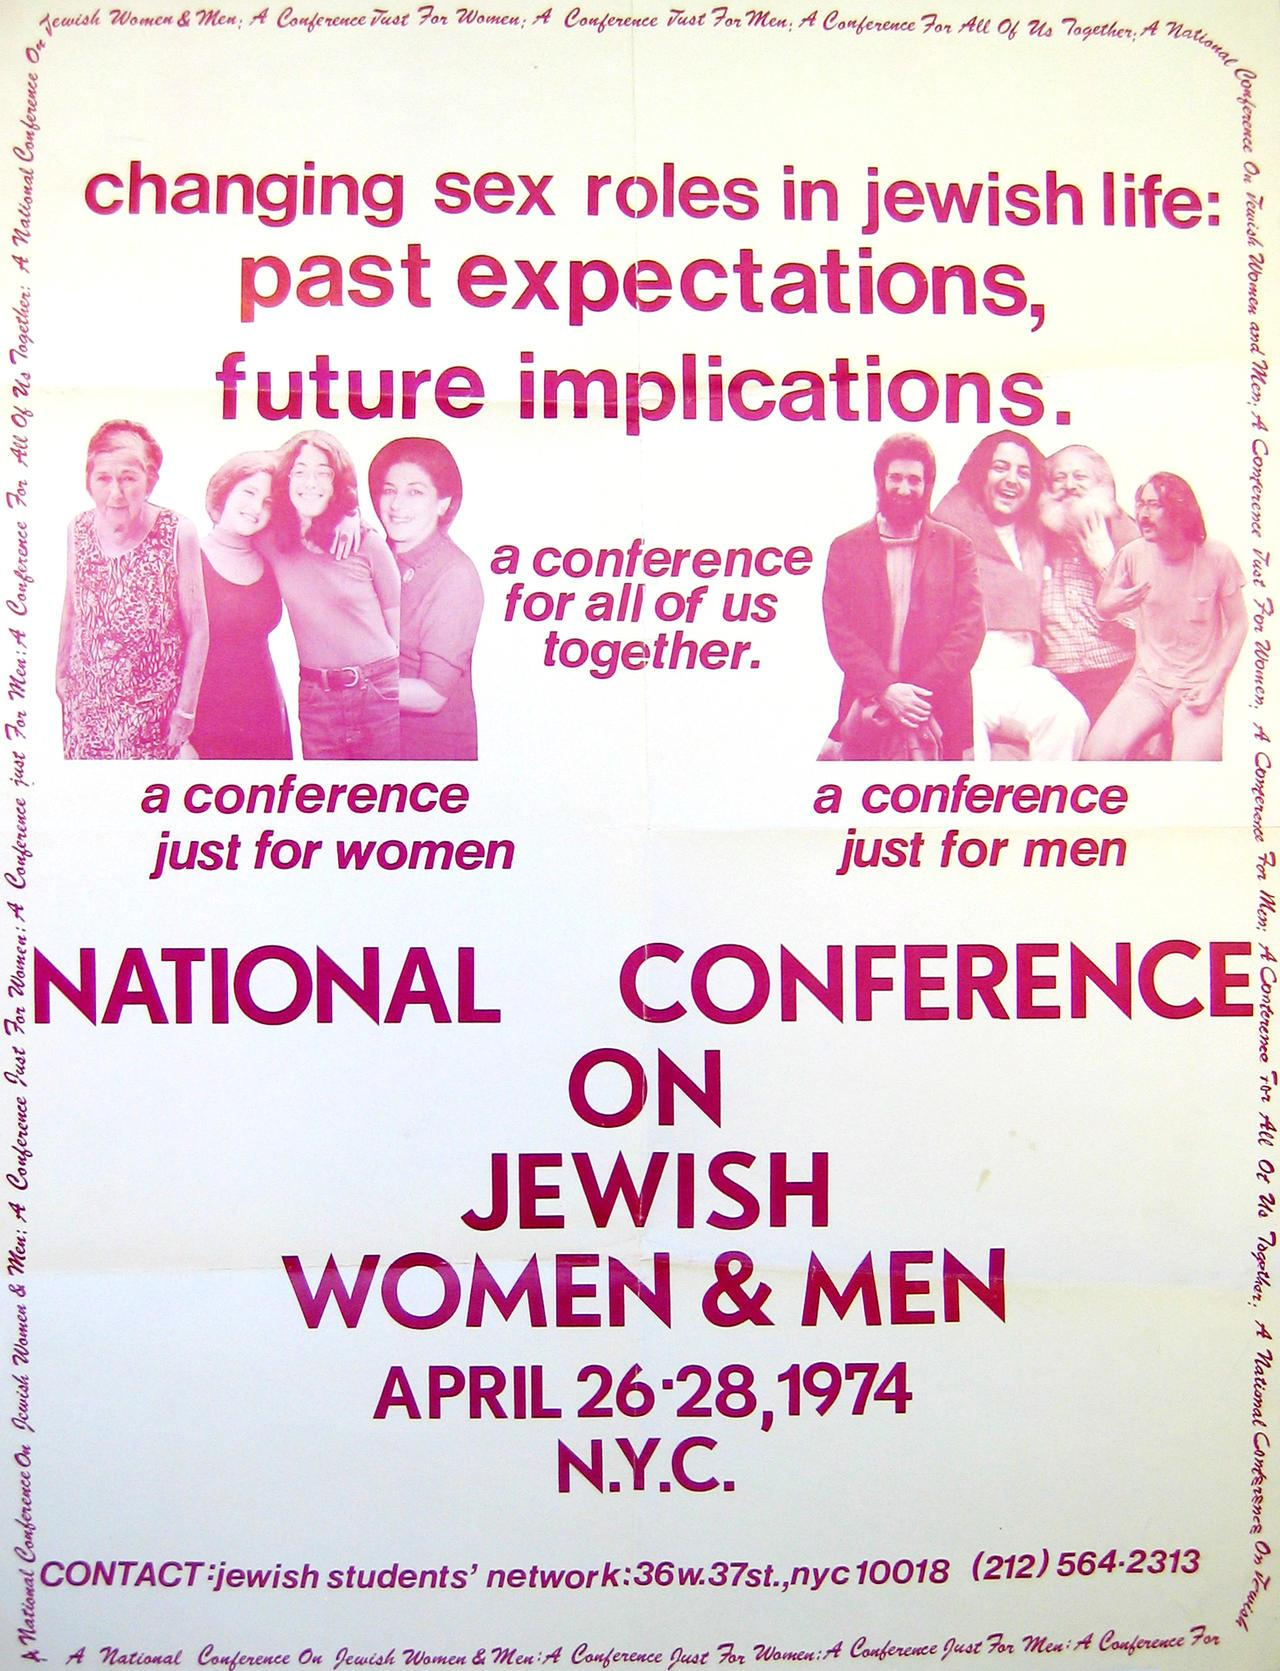 National Conference on Jewish Women & Men Poster